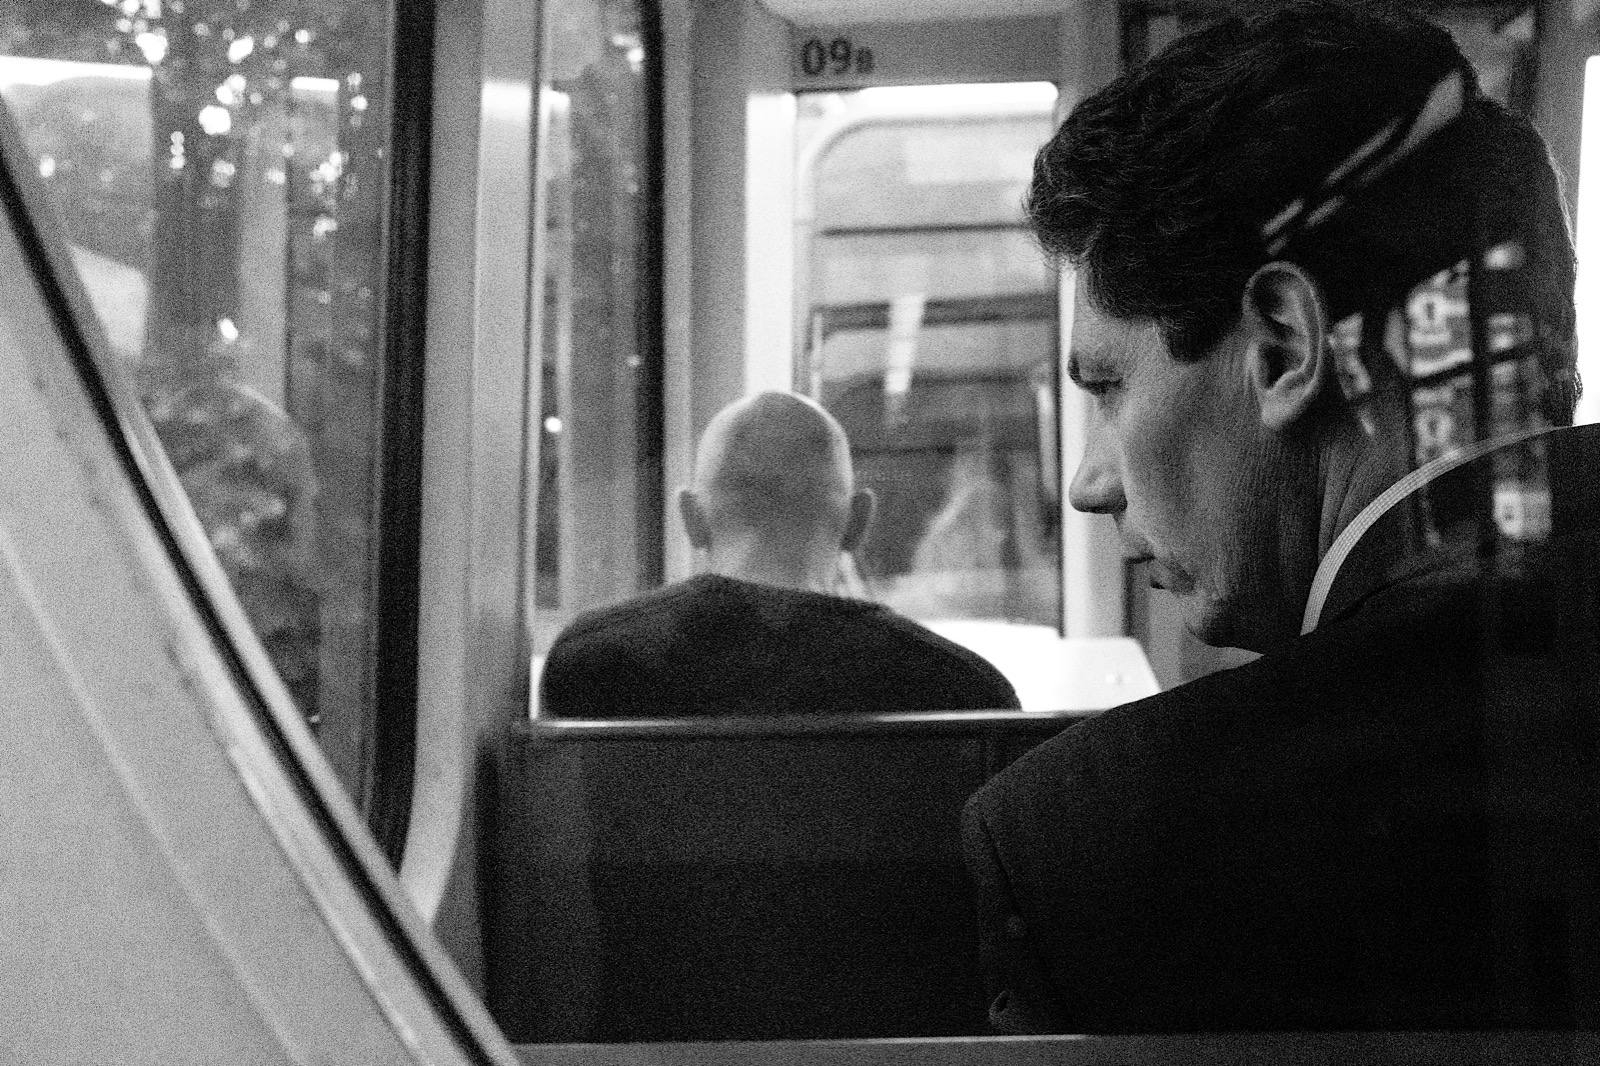 Film Noir style candid portrait of a man sitting on the DLR.